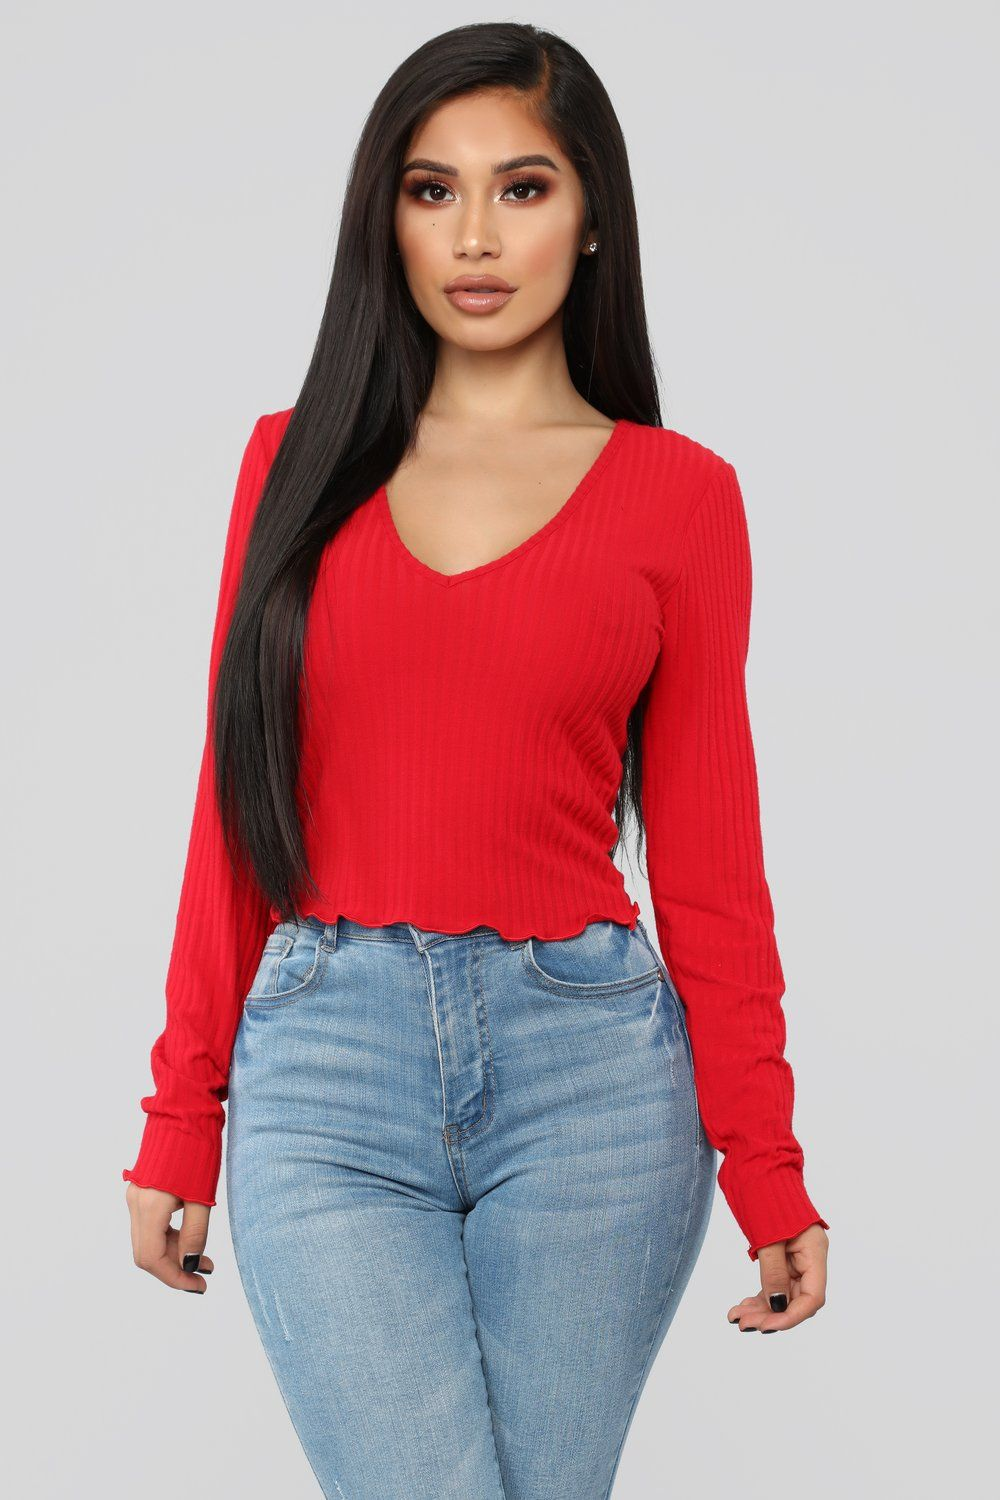 Go To Long Sleeve Top Red Long sleeve outfits, Fashion